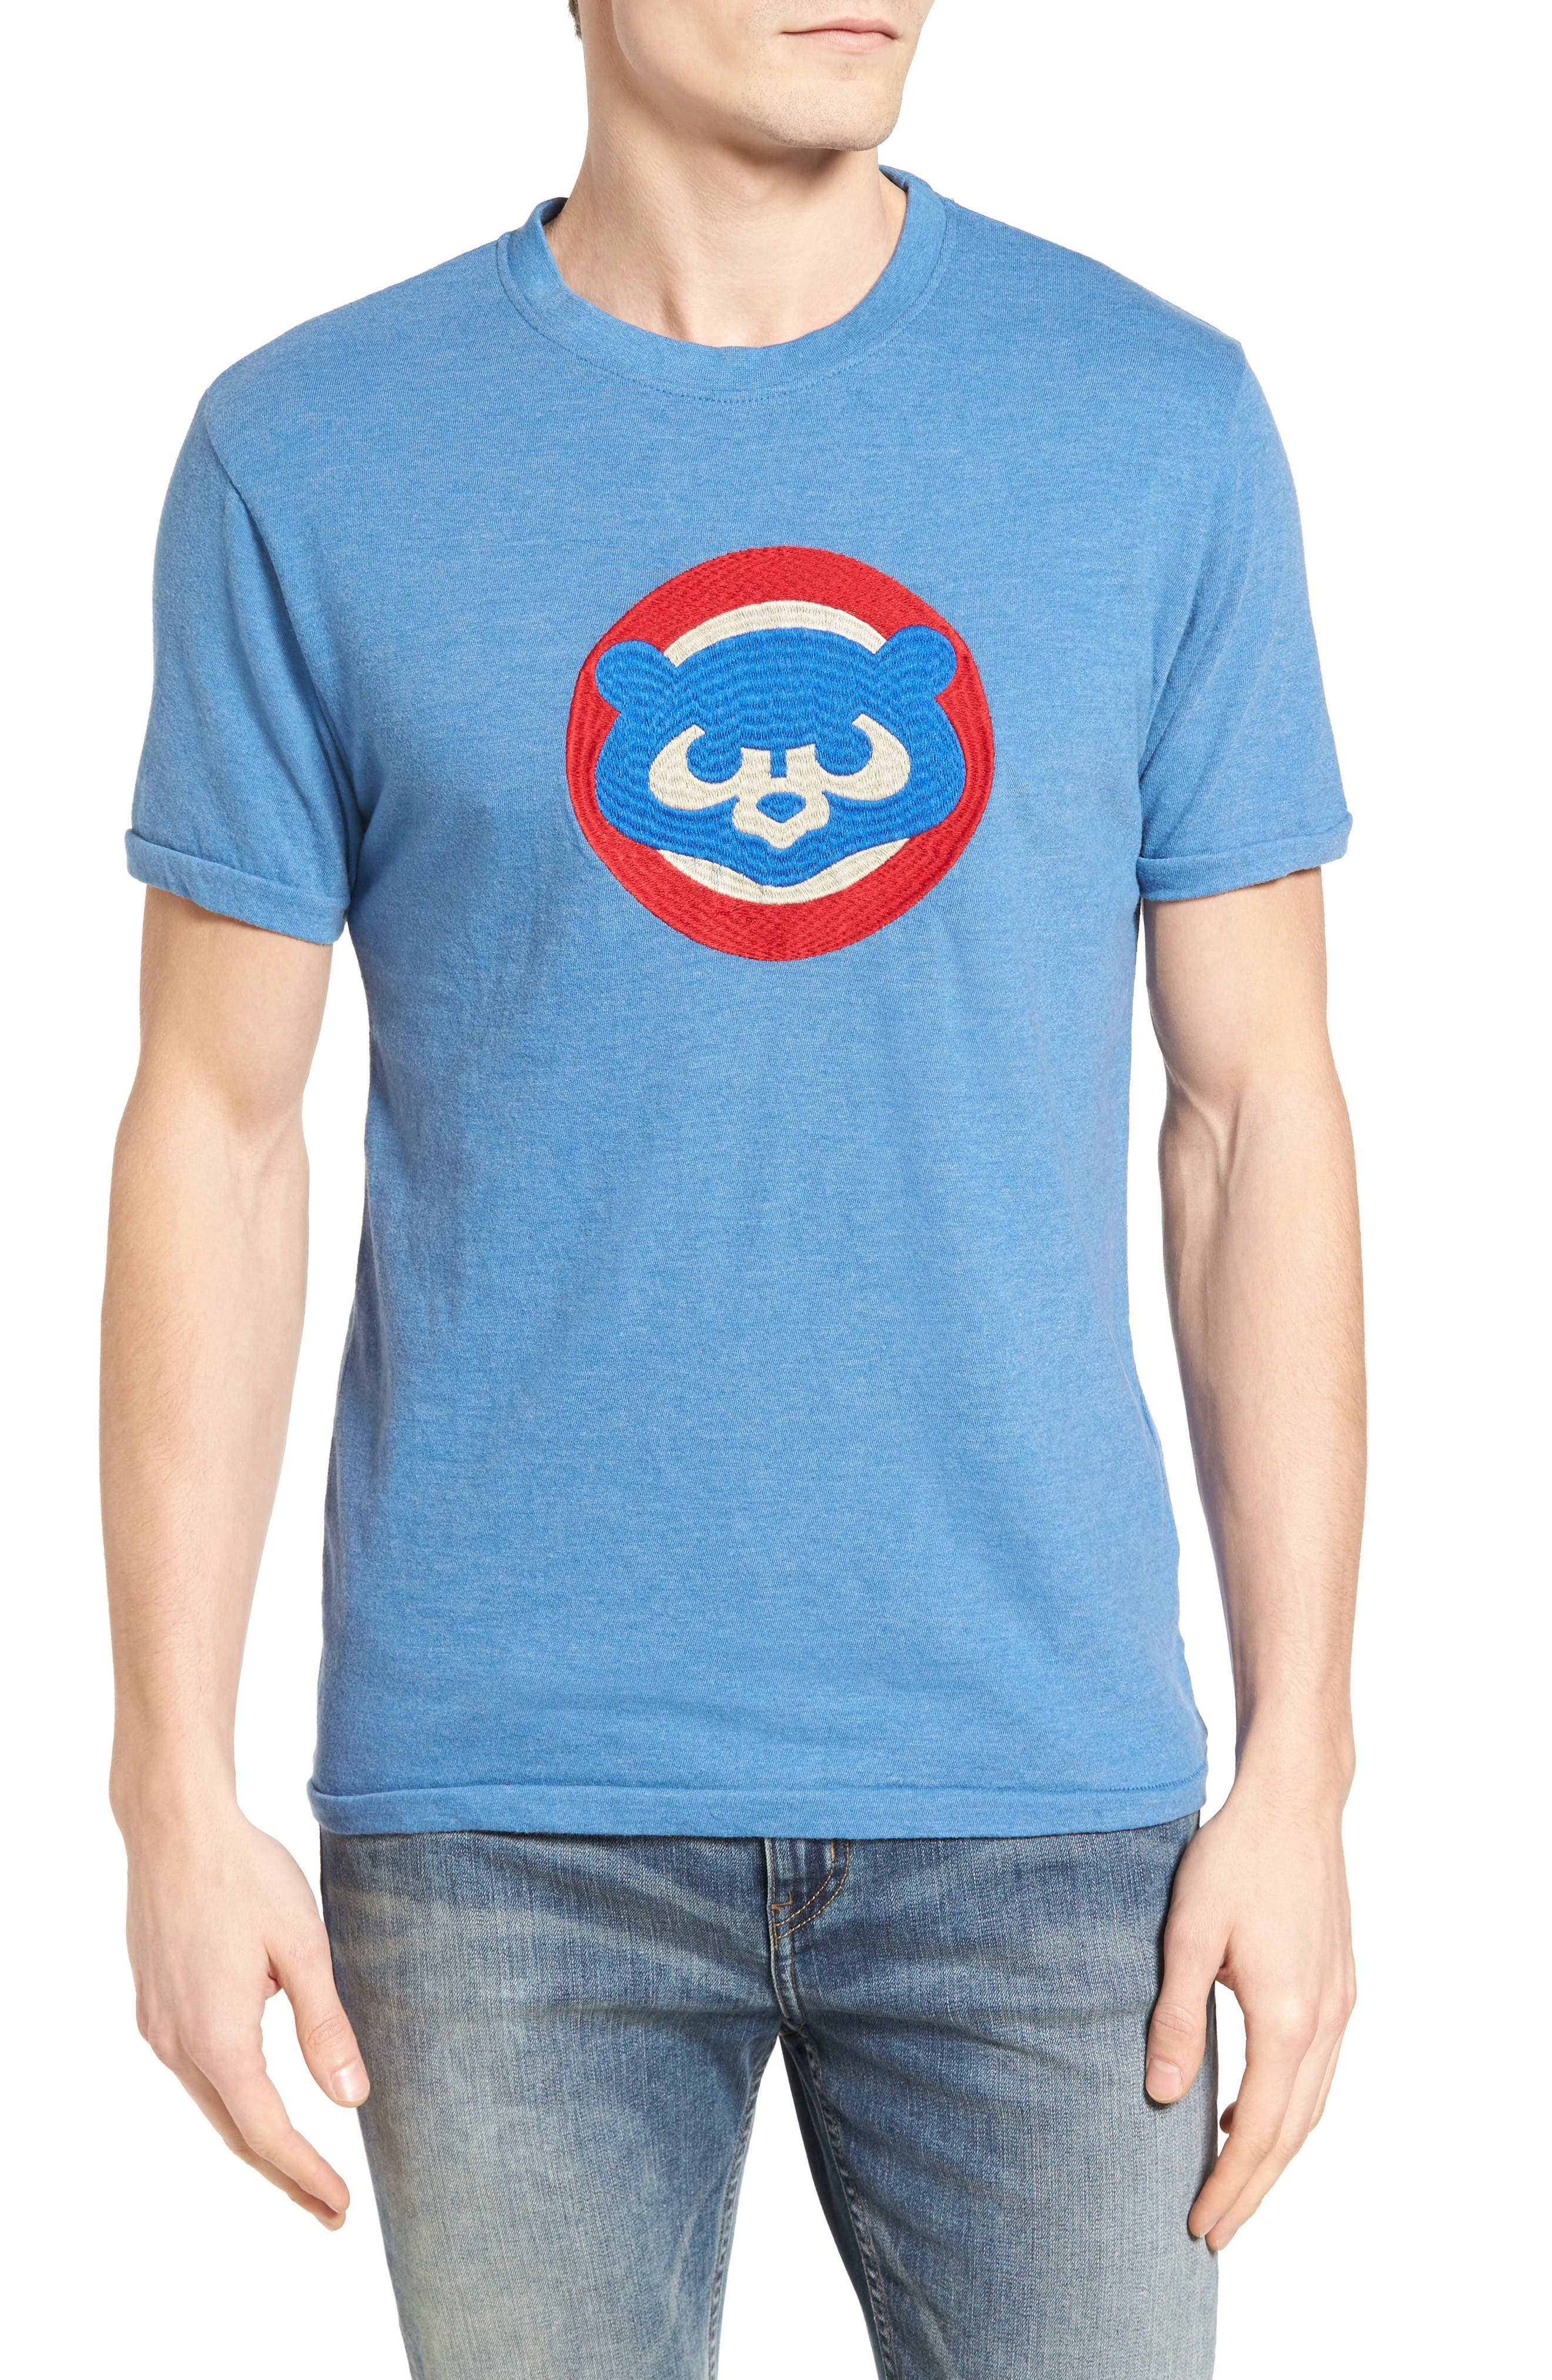 Main Image - American Needle Hillwood Chicago Cubs T-Shirt